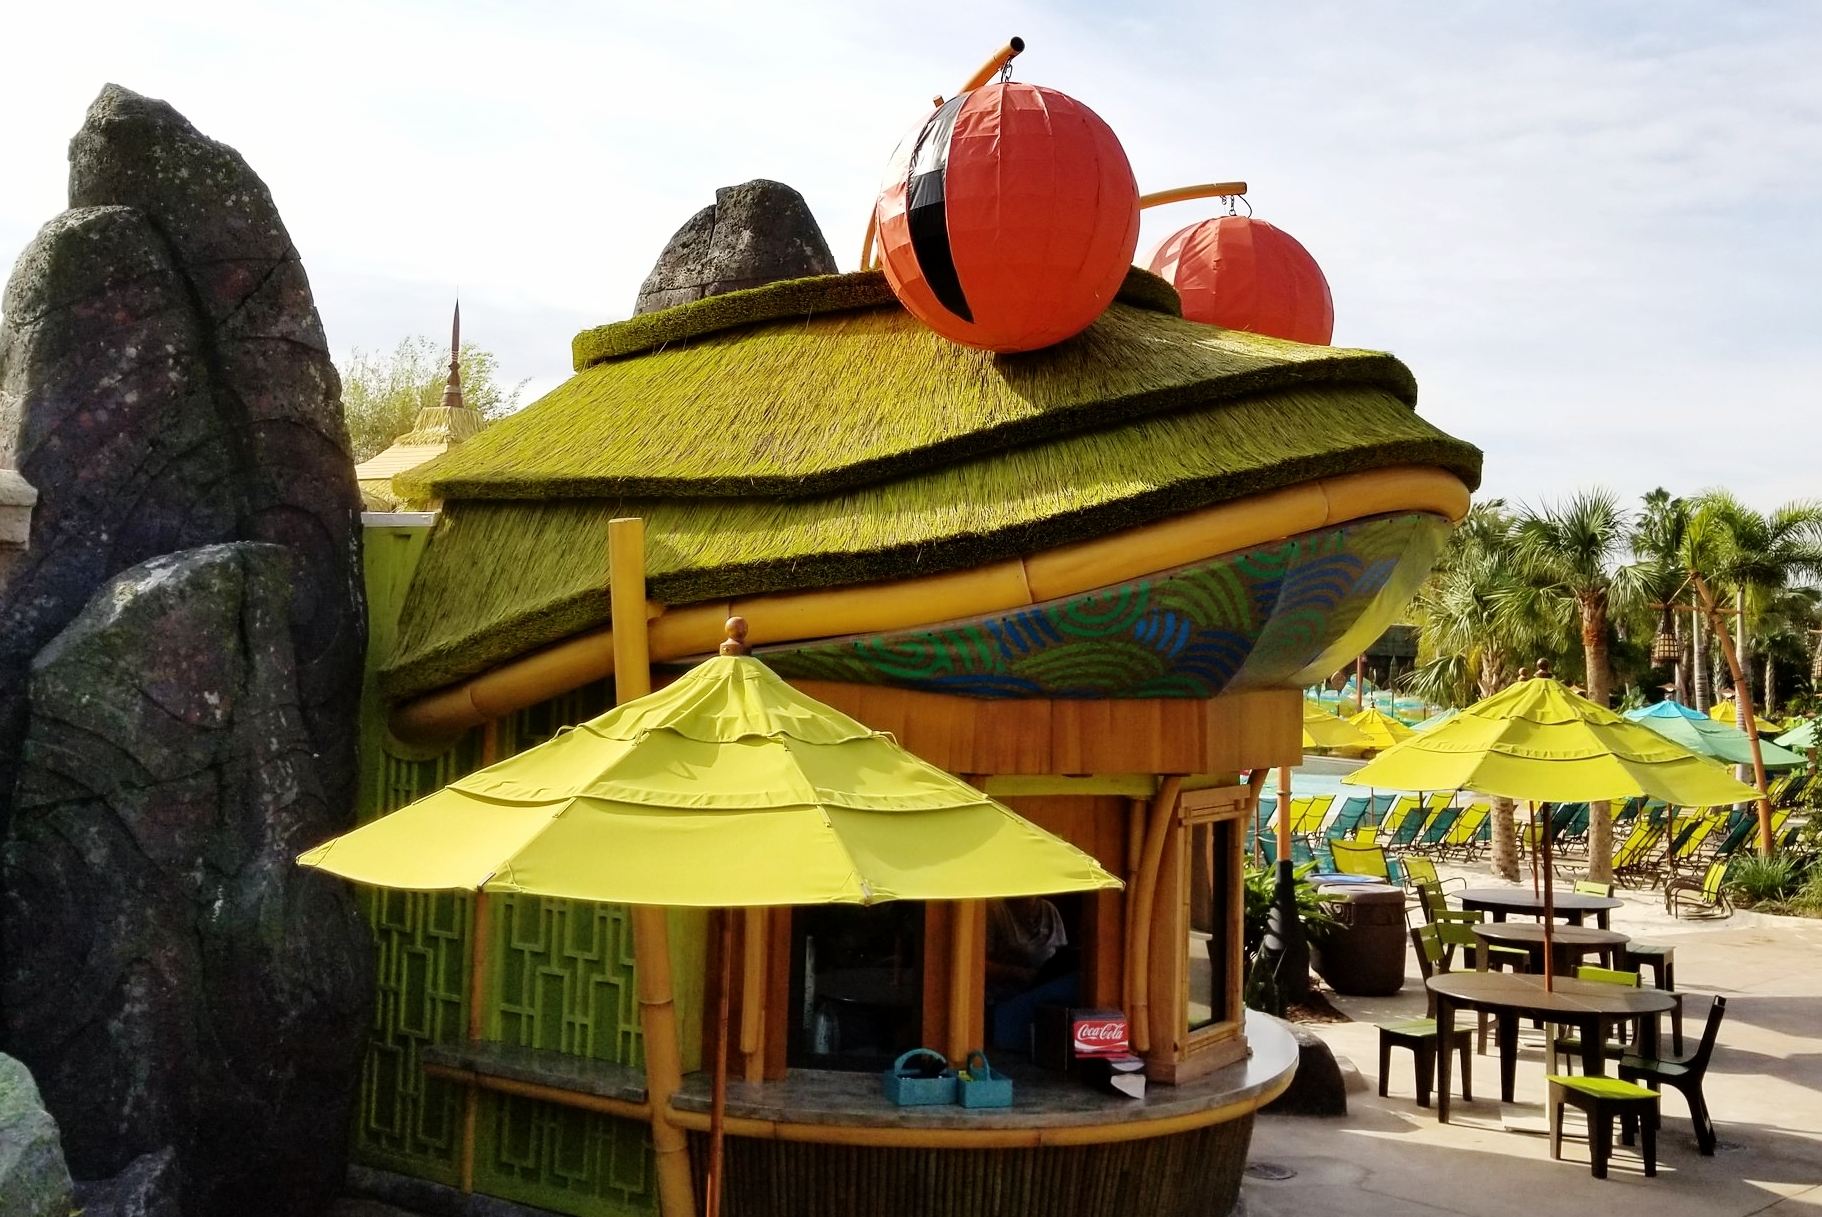 The Feasting Frog in Universal's Volcano Bay